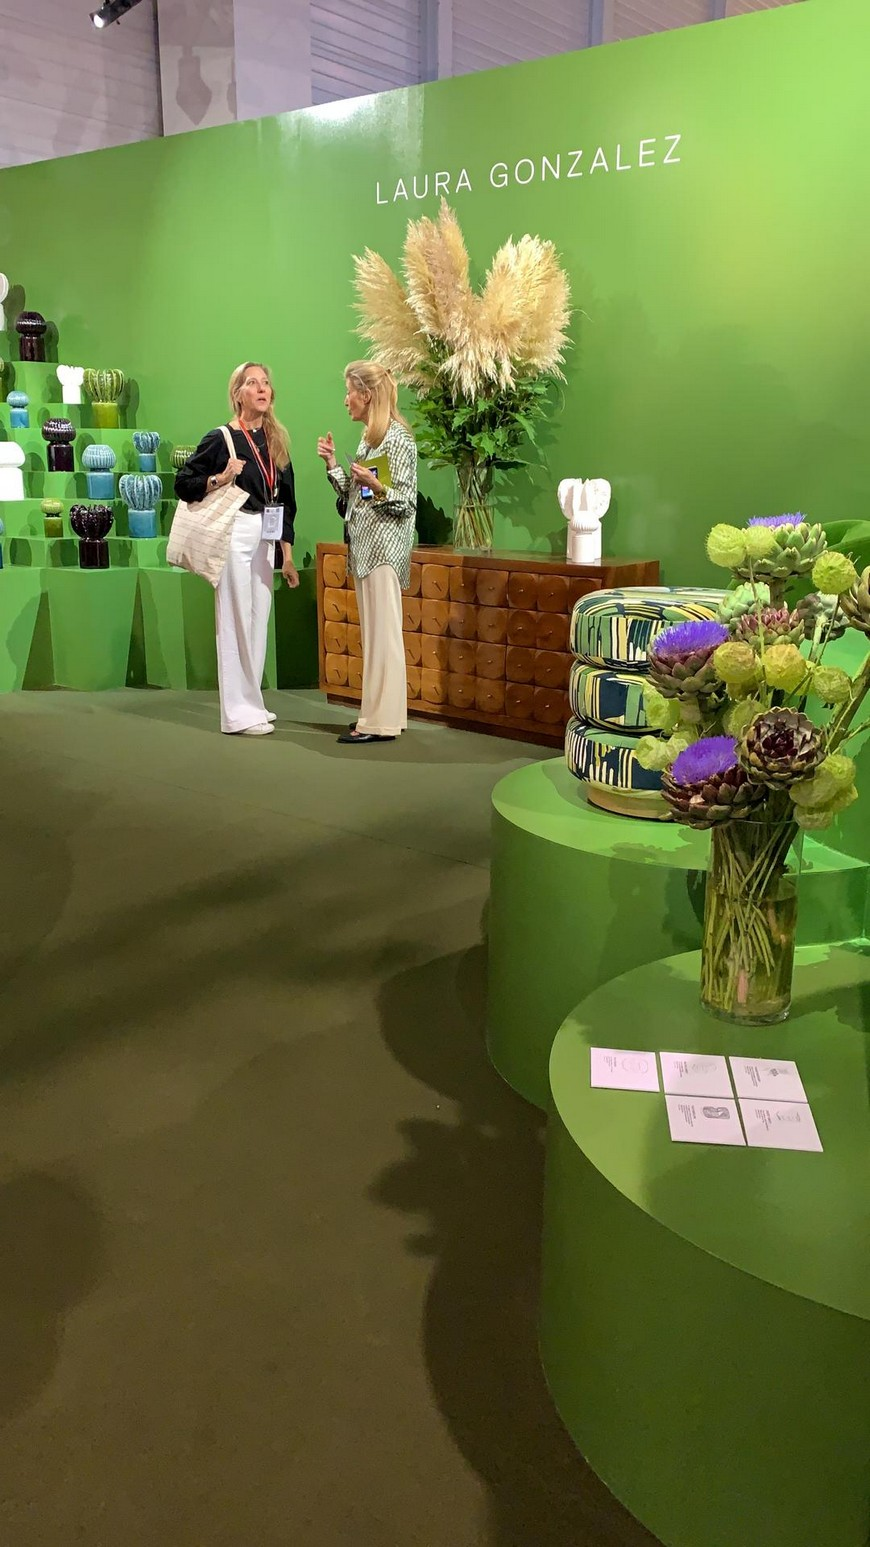 Maison Et Objet 2019: A Flashback Of The Best Design Ideas And Moments maison et objet Maison Et Objet 2019: A Flashback Of The Best Design Ideas And Moments Maison Et Objet 2019 A Flashback Of The Best Design Ideas And Moments 11